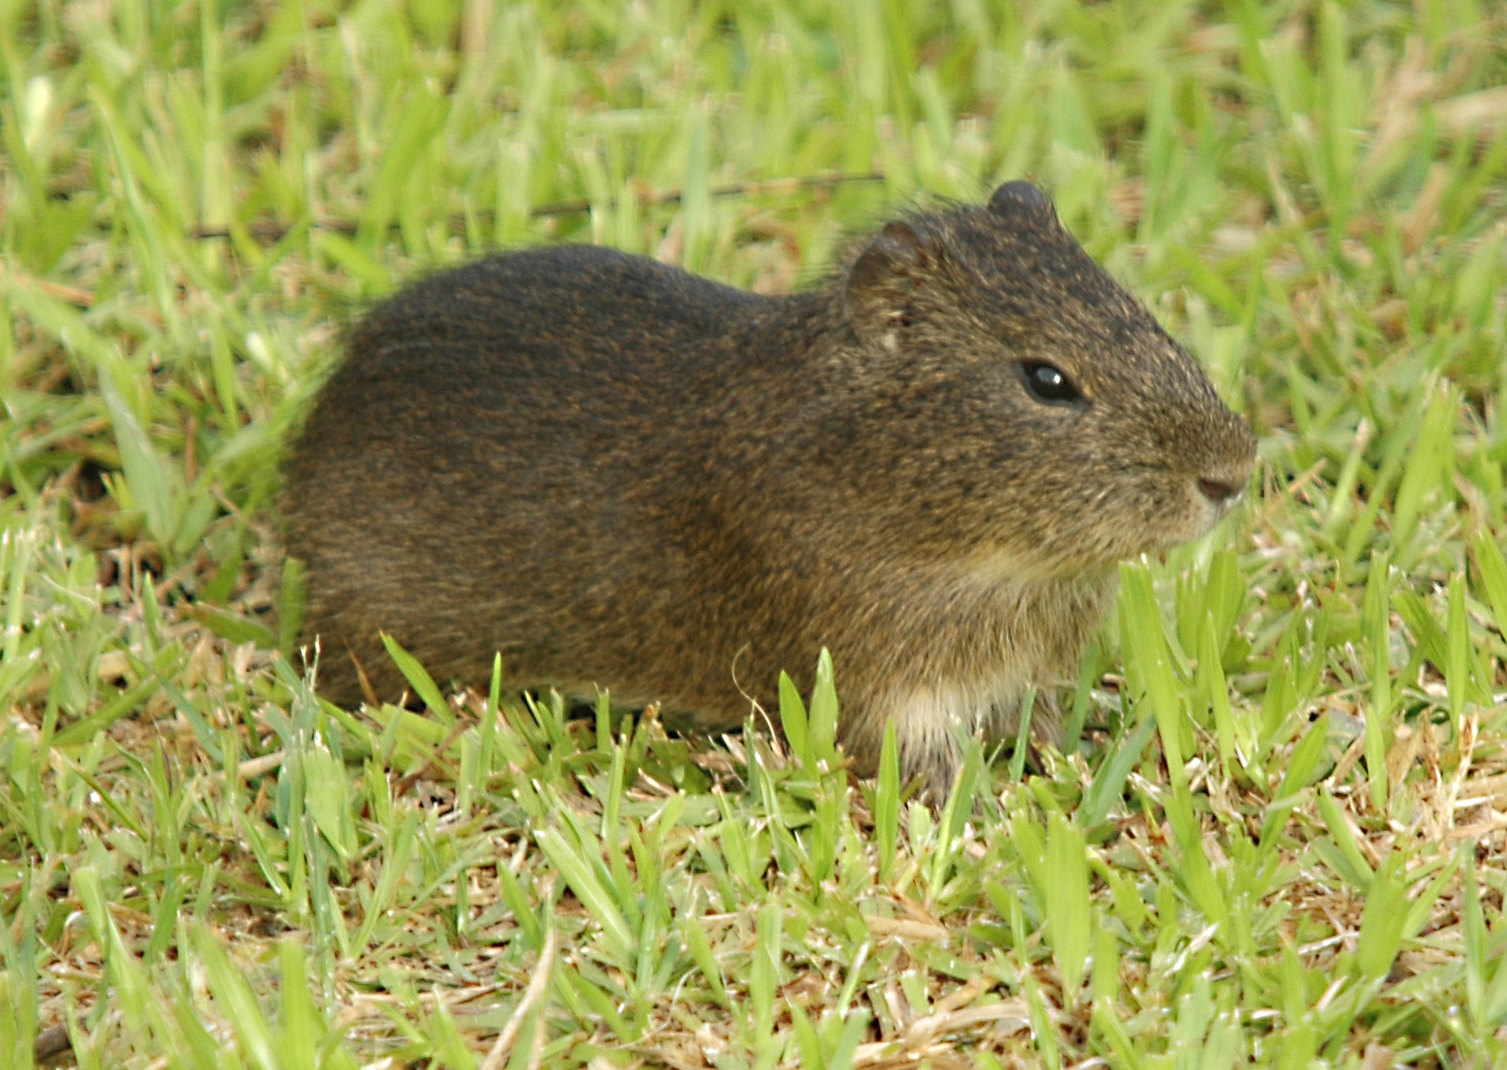 Image of Cavy